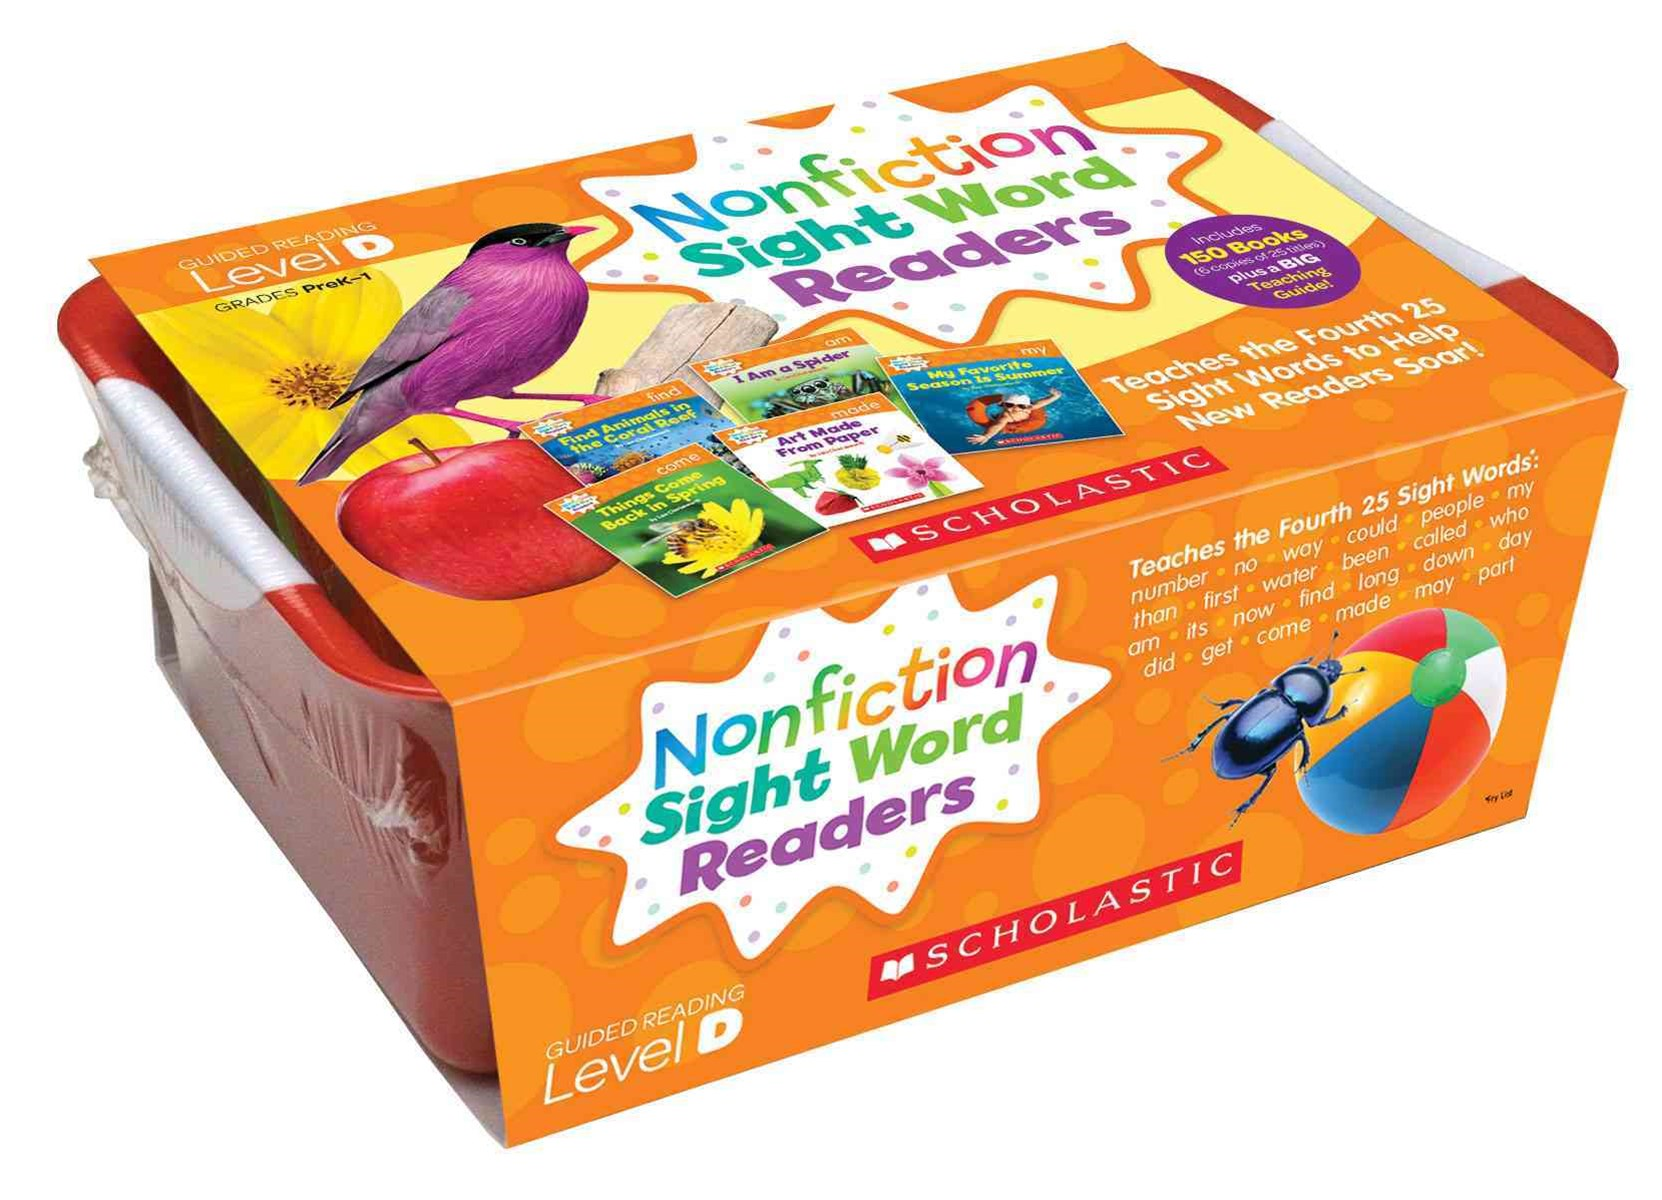 Nonfiction Sight Word Readers Classroom Tub 4